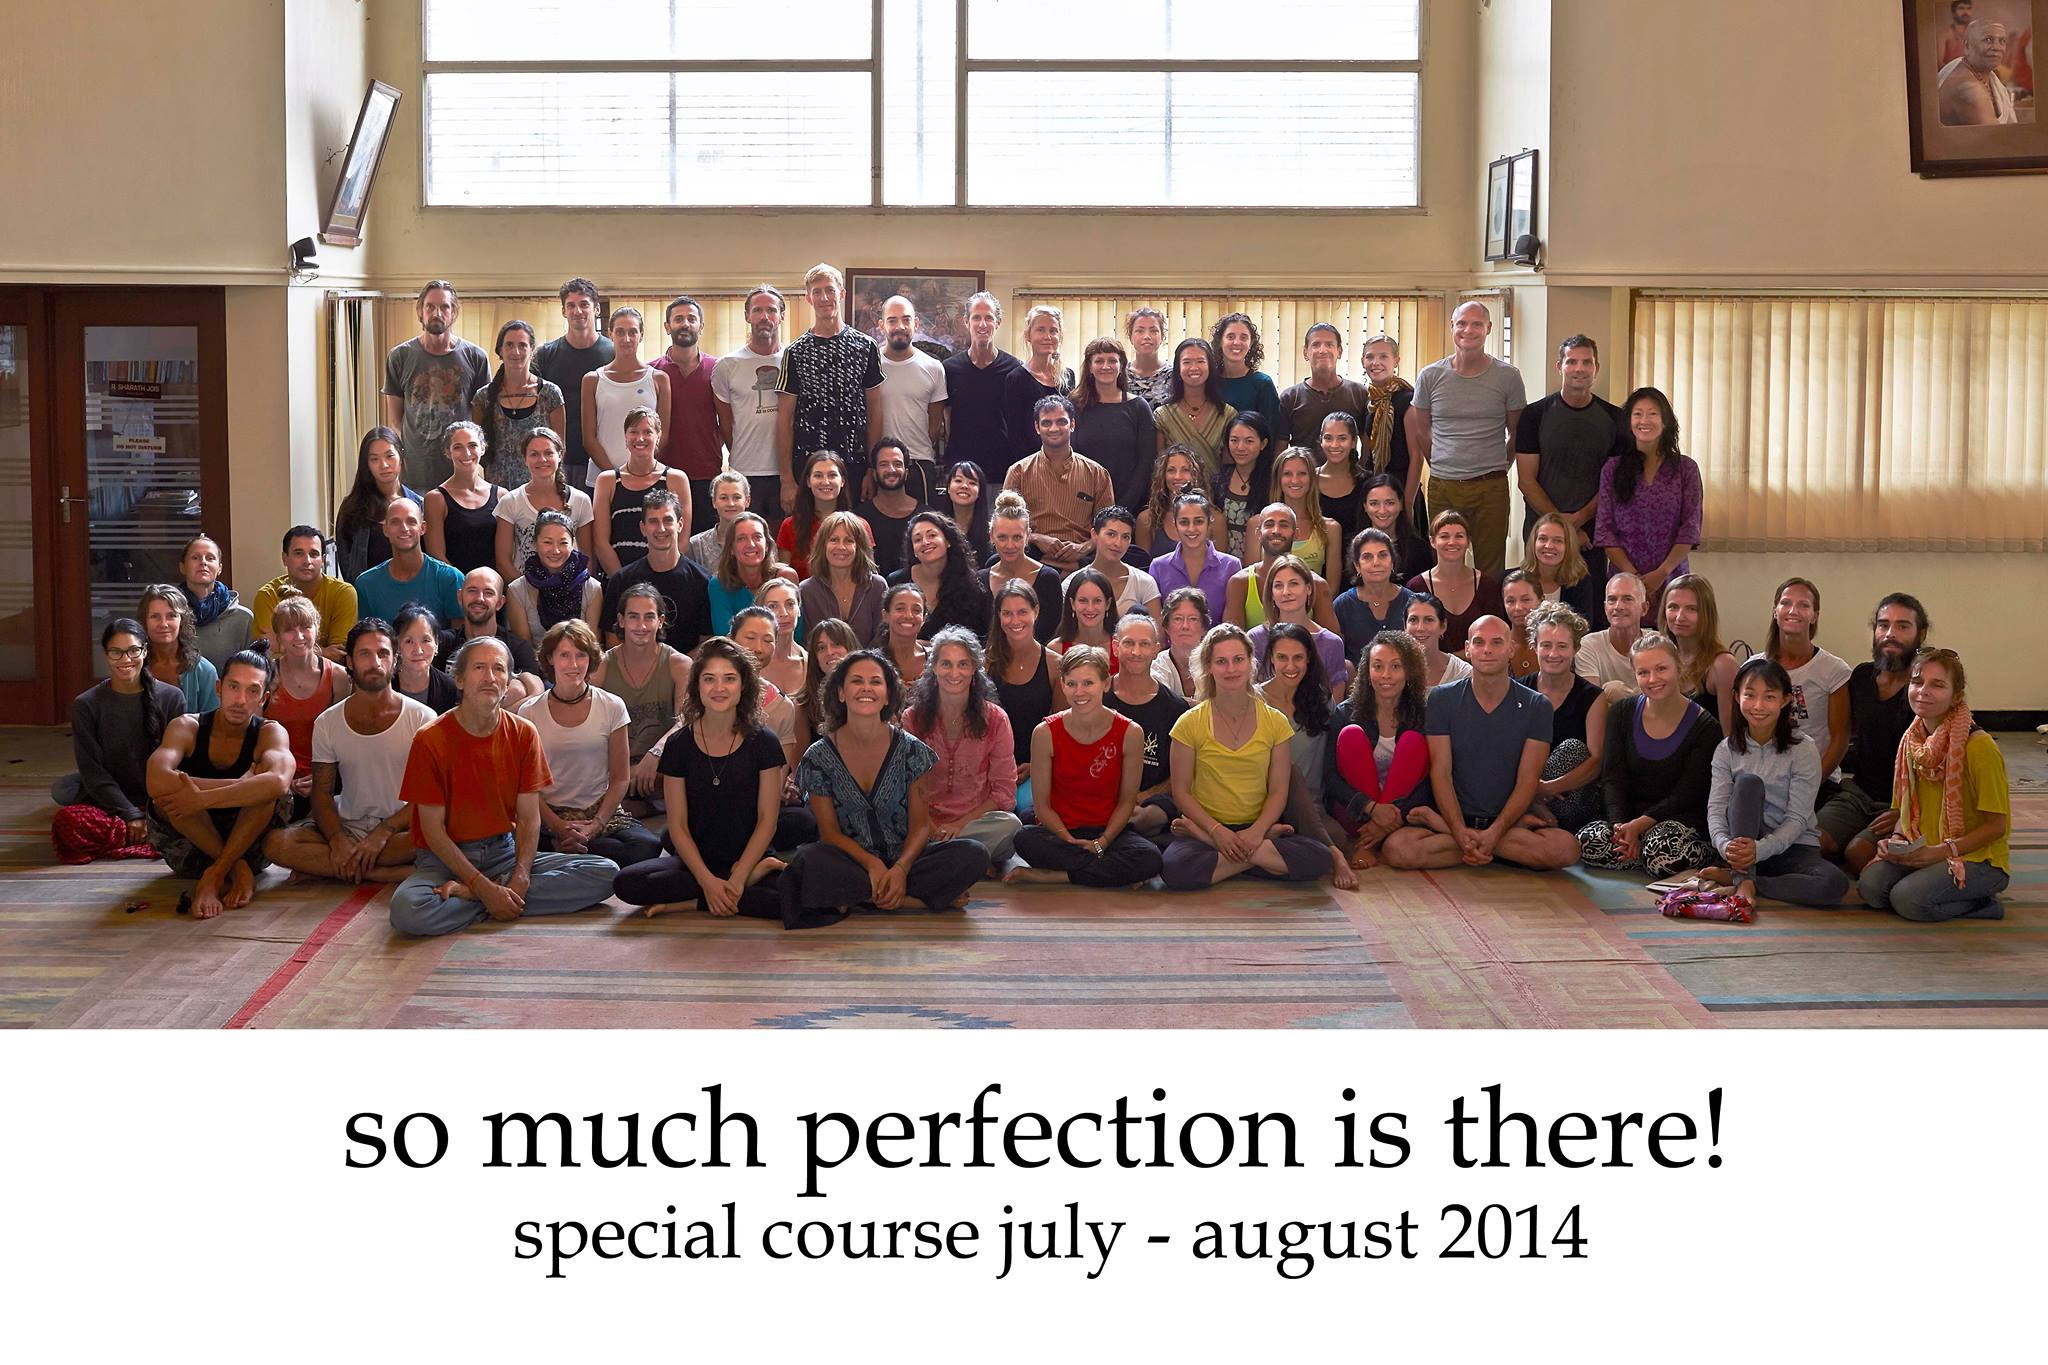 Summer course 2014 in Mysore